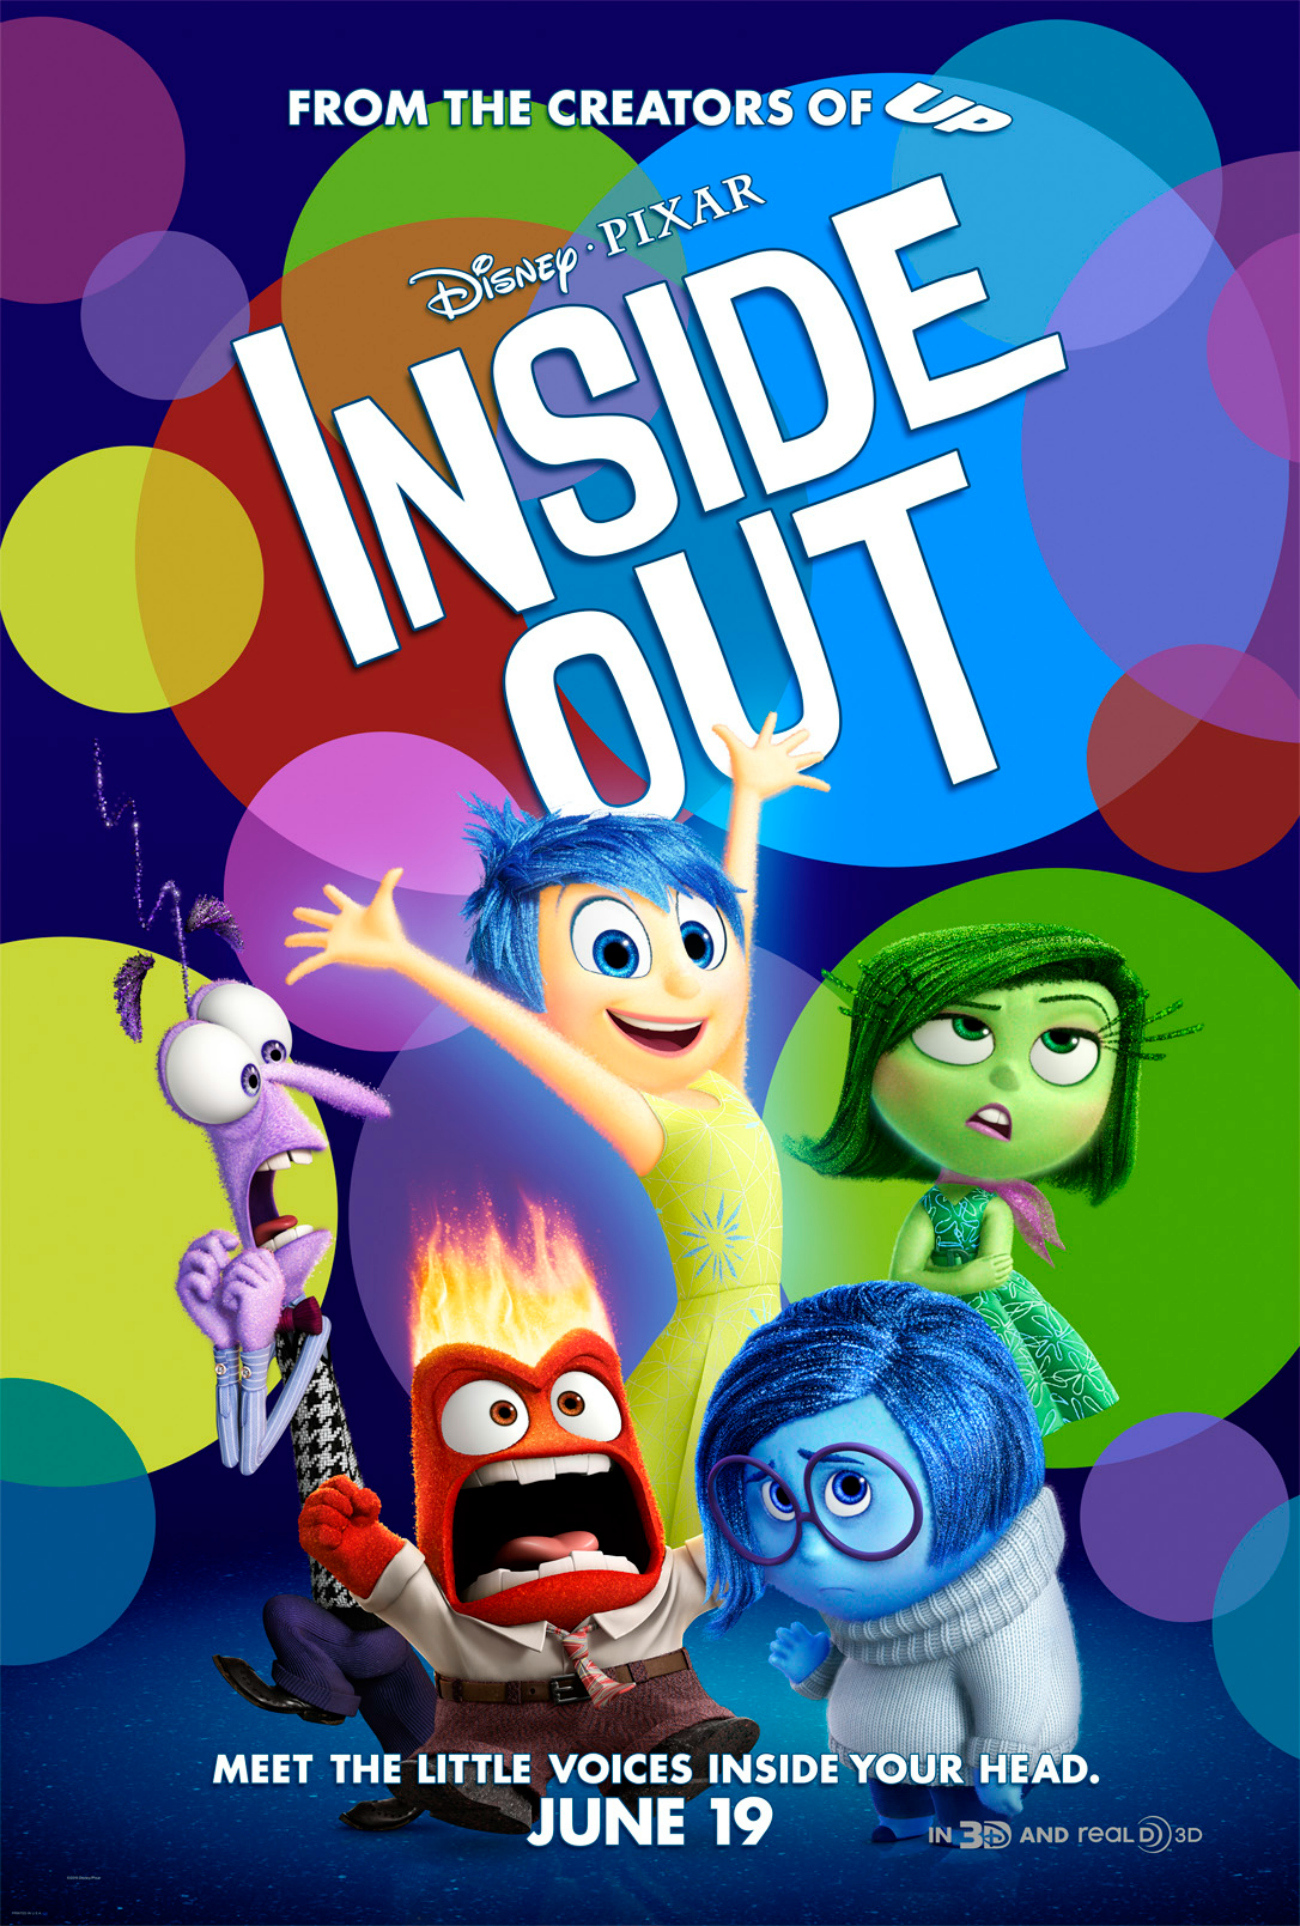 Poster of Inside Out, A Disney movie. It has 5 anime pictures on the poster depicting 5 major emotions. Using this for one moment at a time on One Happy Amma.